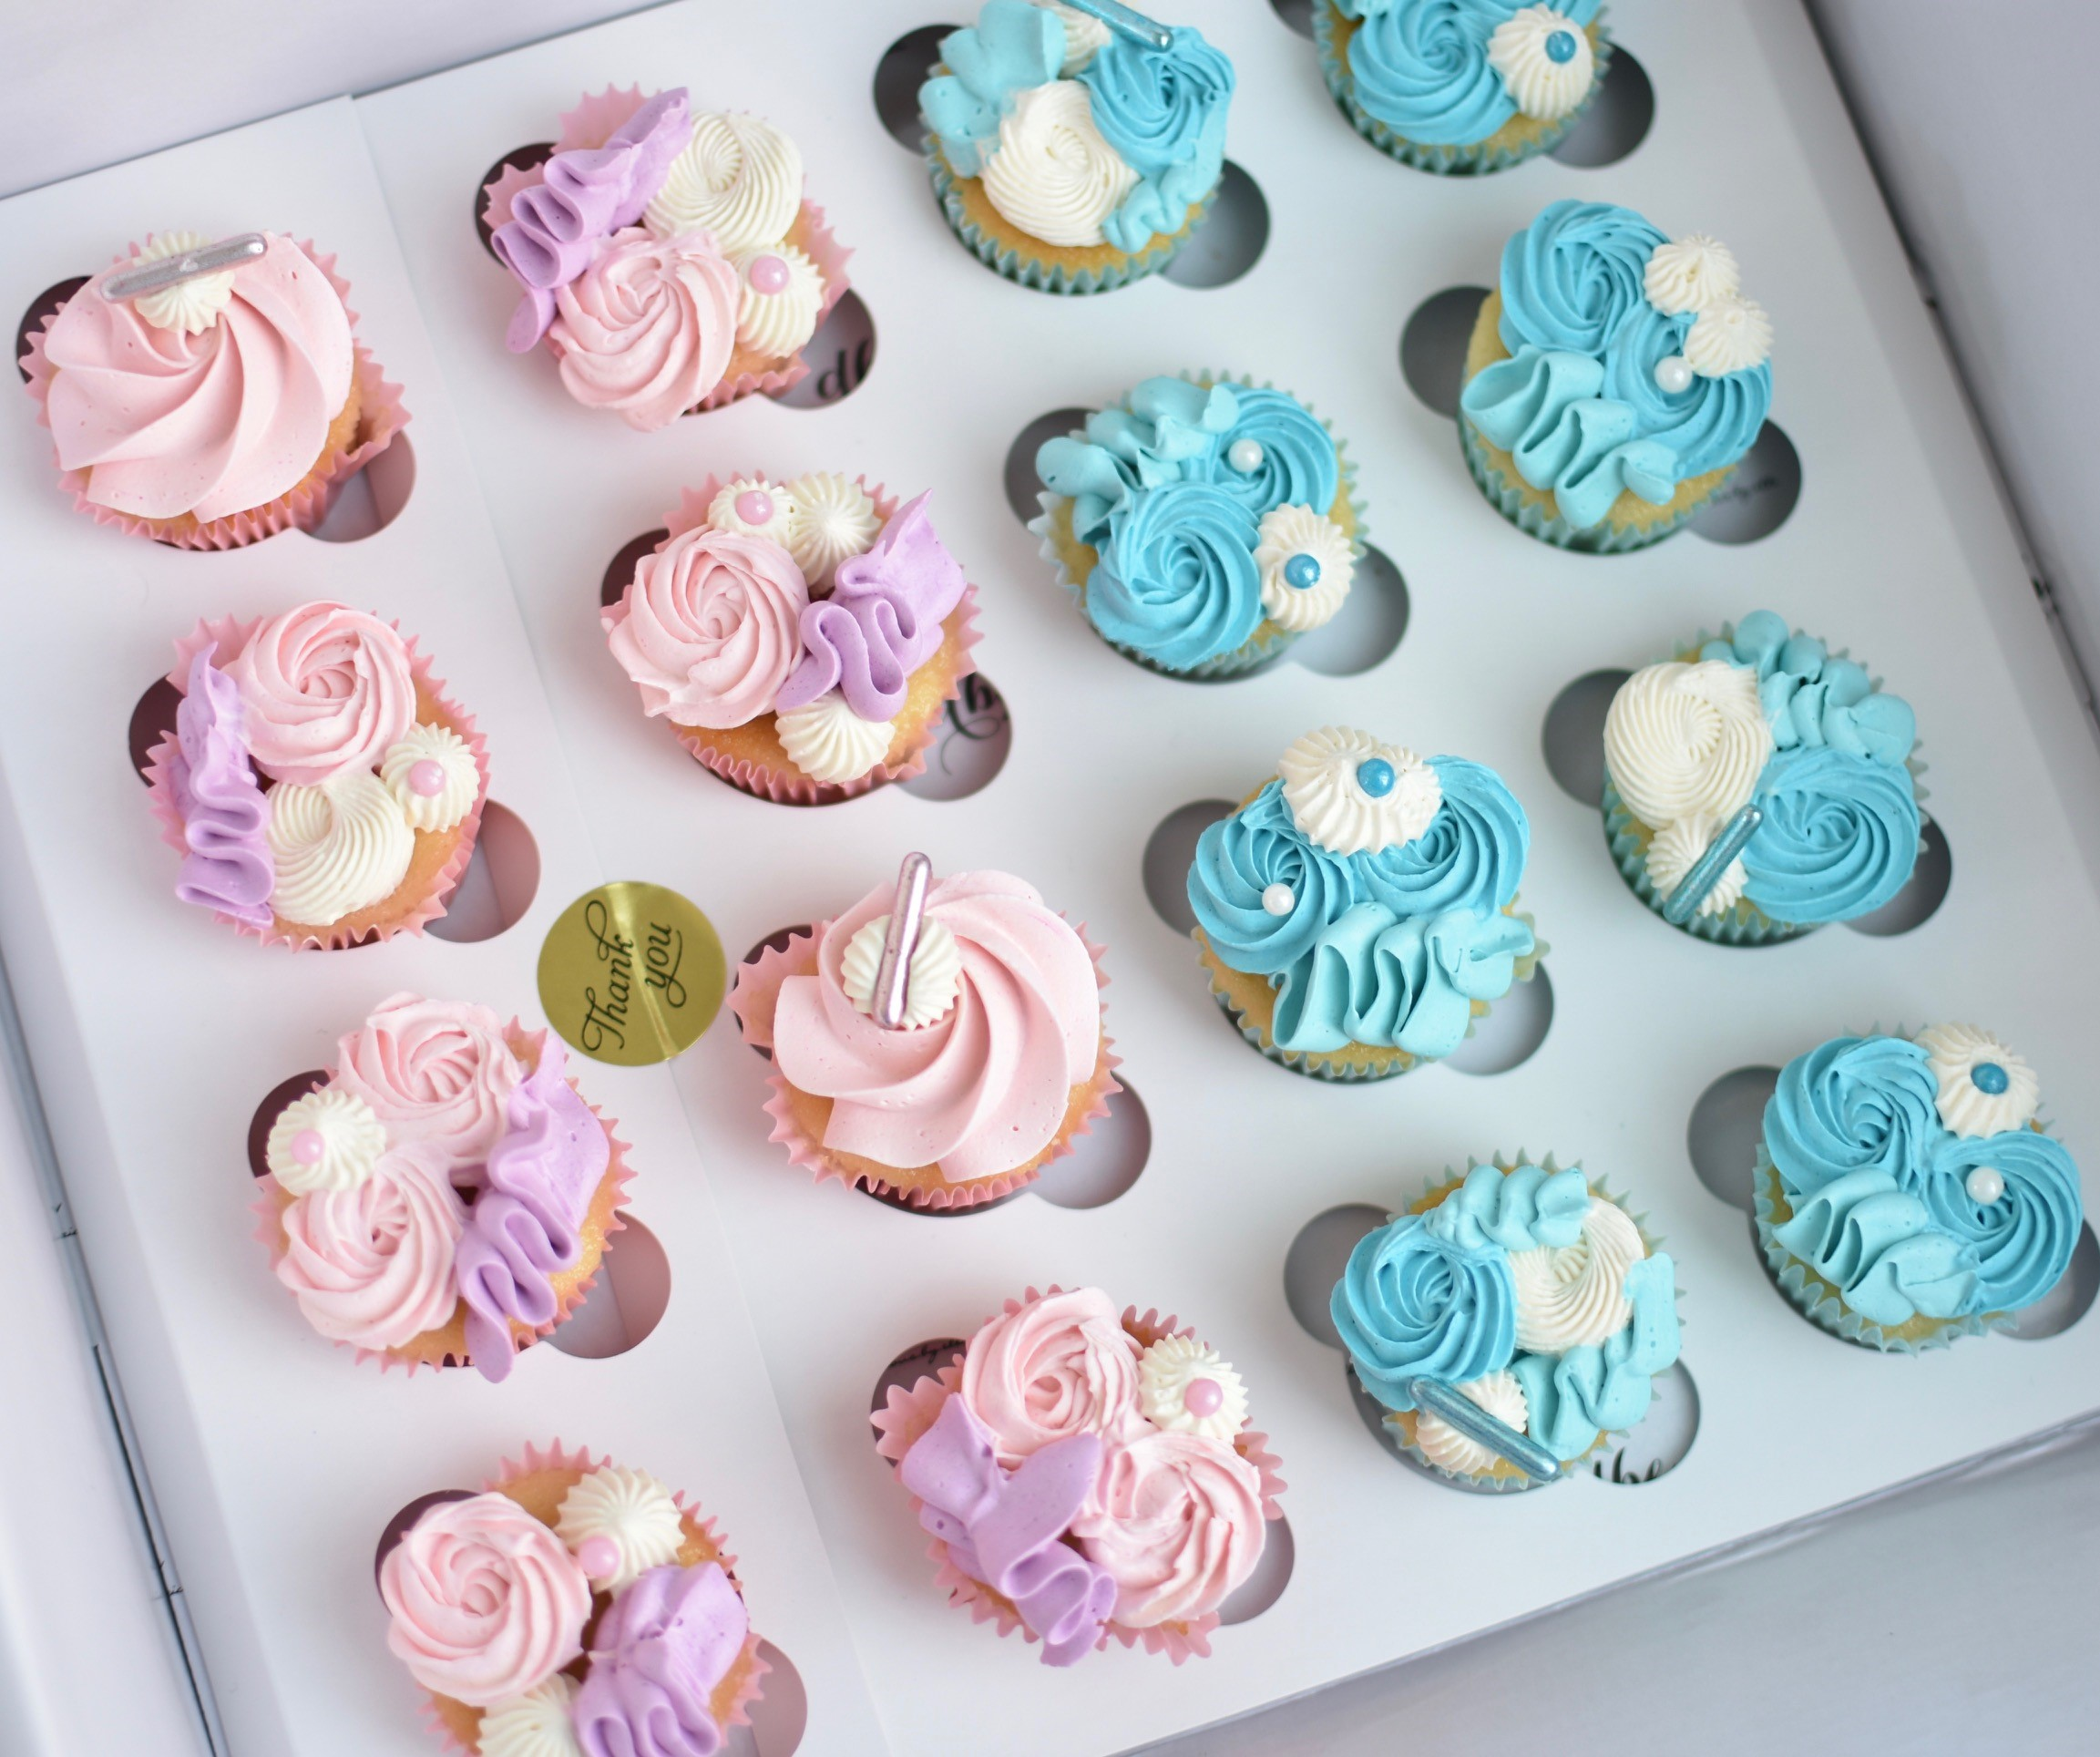 BABY SIZE BUTTERCREAM CUPCAKES  From $2.00 each  Minimum Order Quantity : 24 Per Flavour